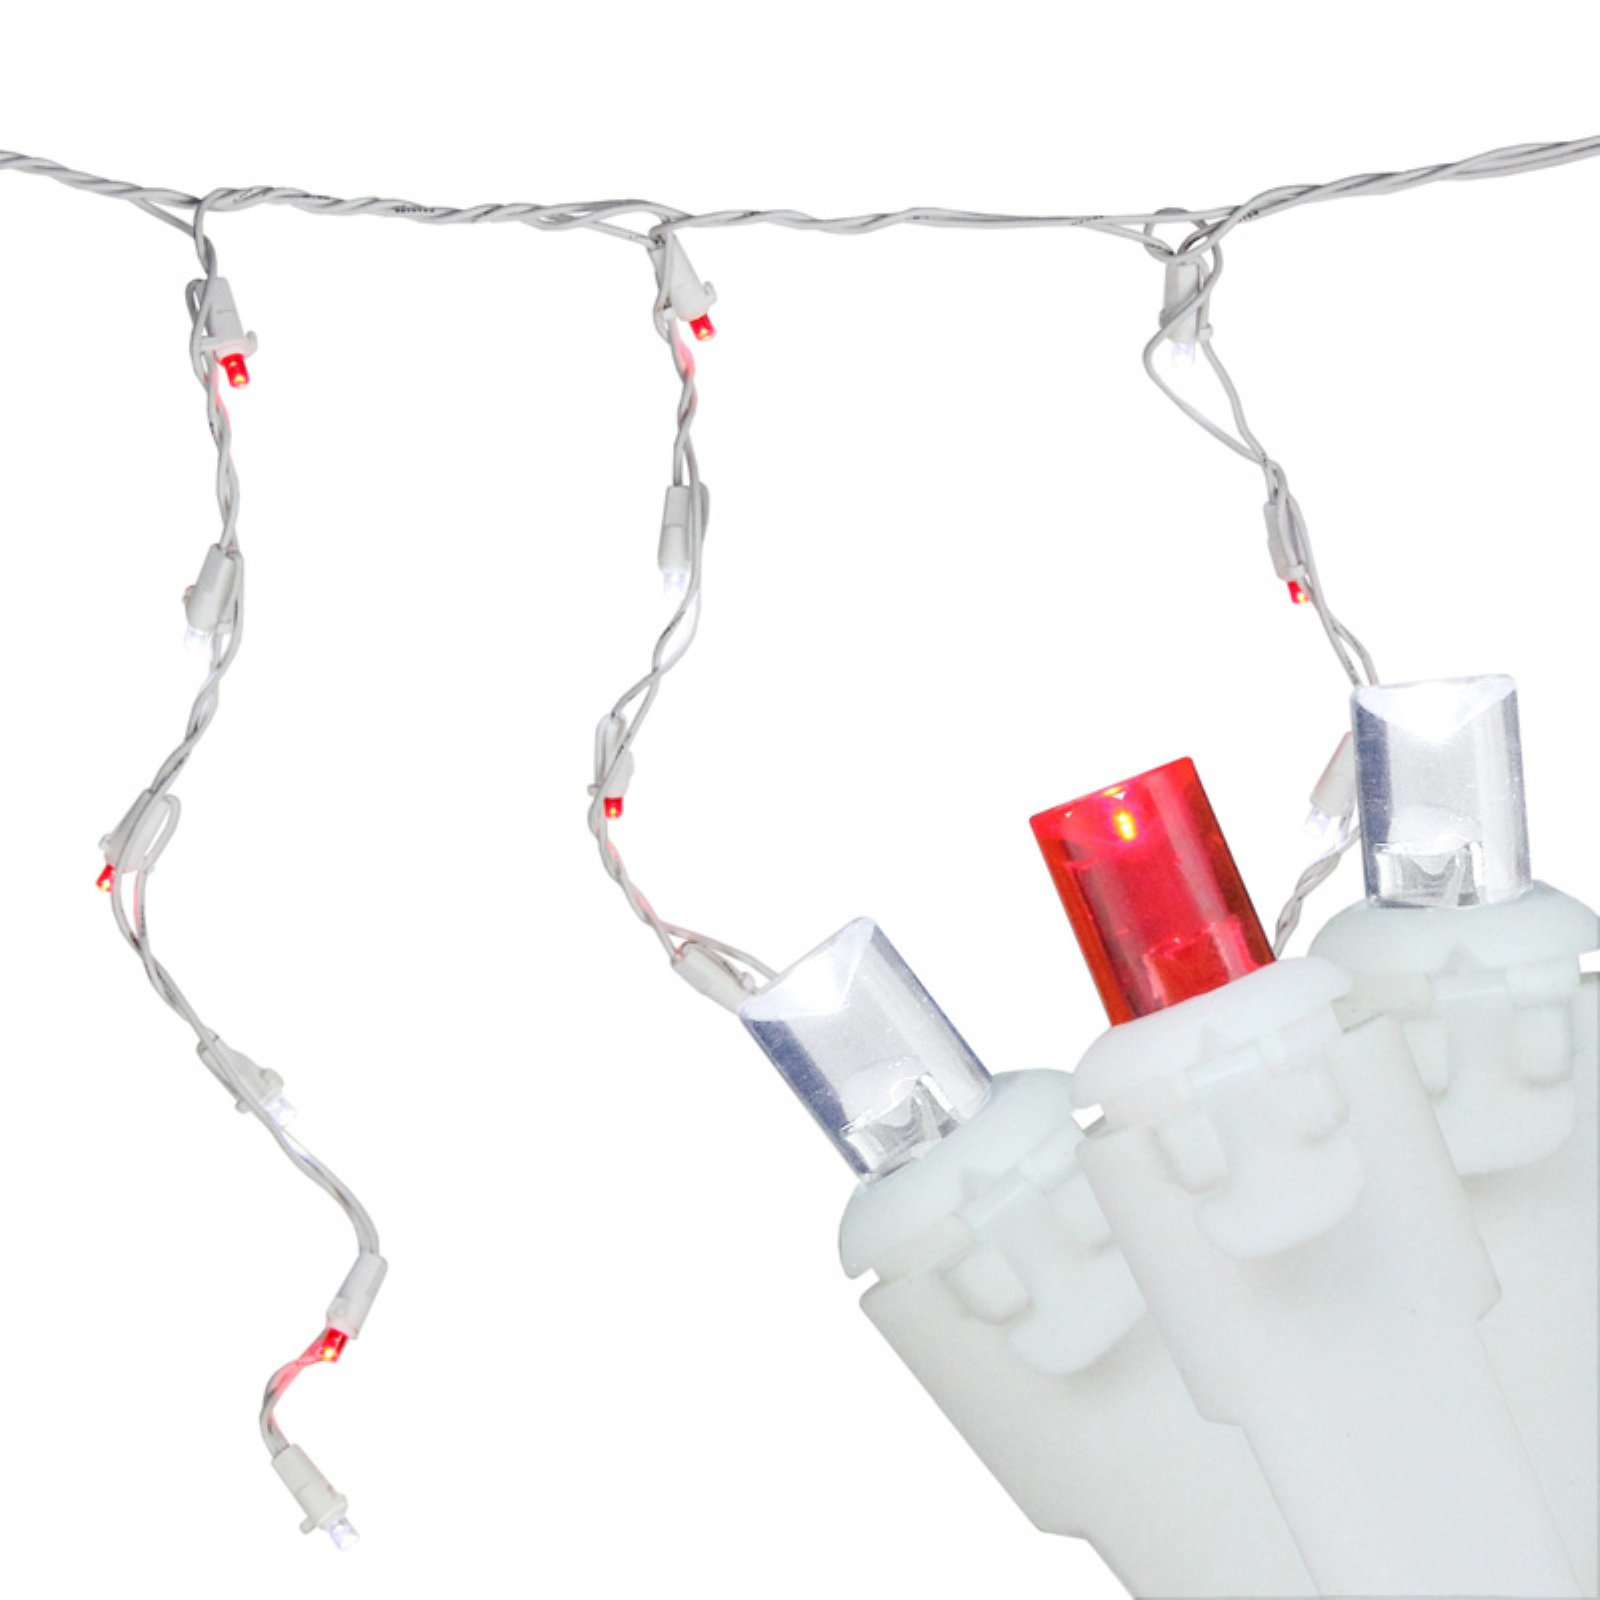 Northlight 100 ct. LED Wide Angle Red/White Icicle Lights with White Wire 3 in. Spacing